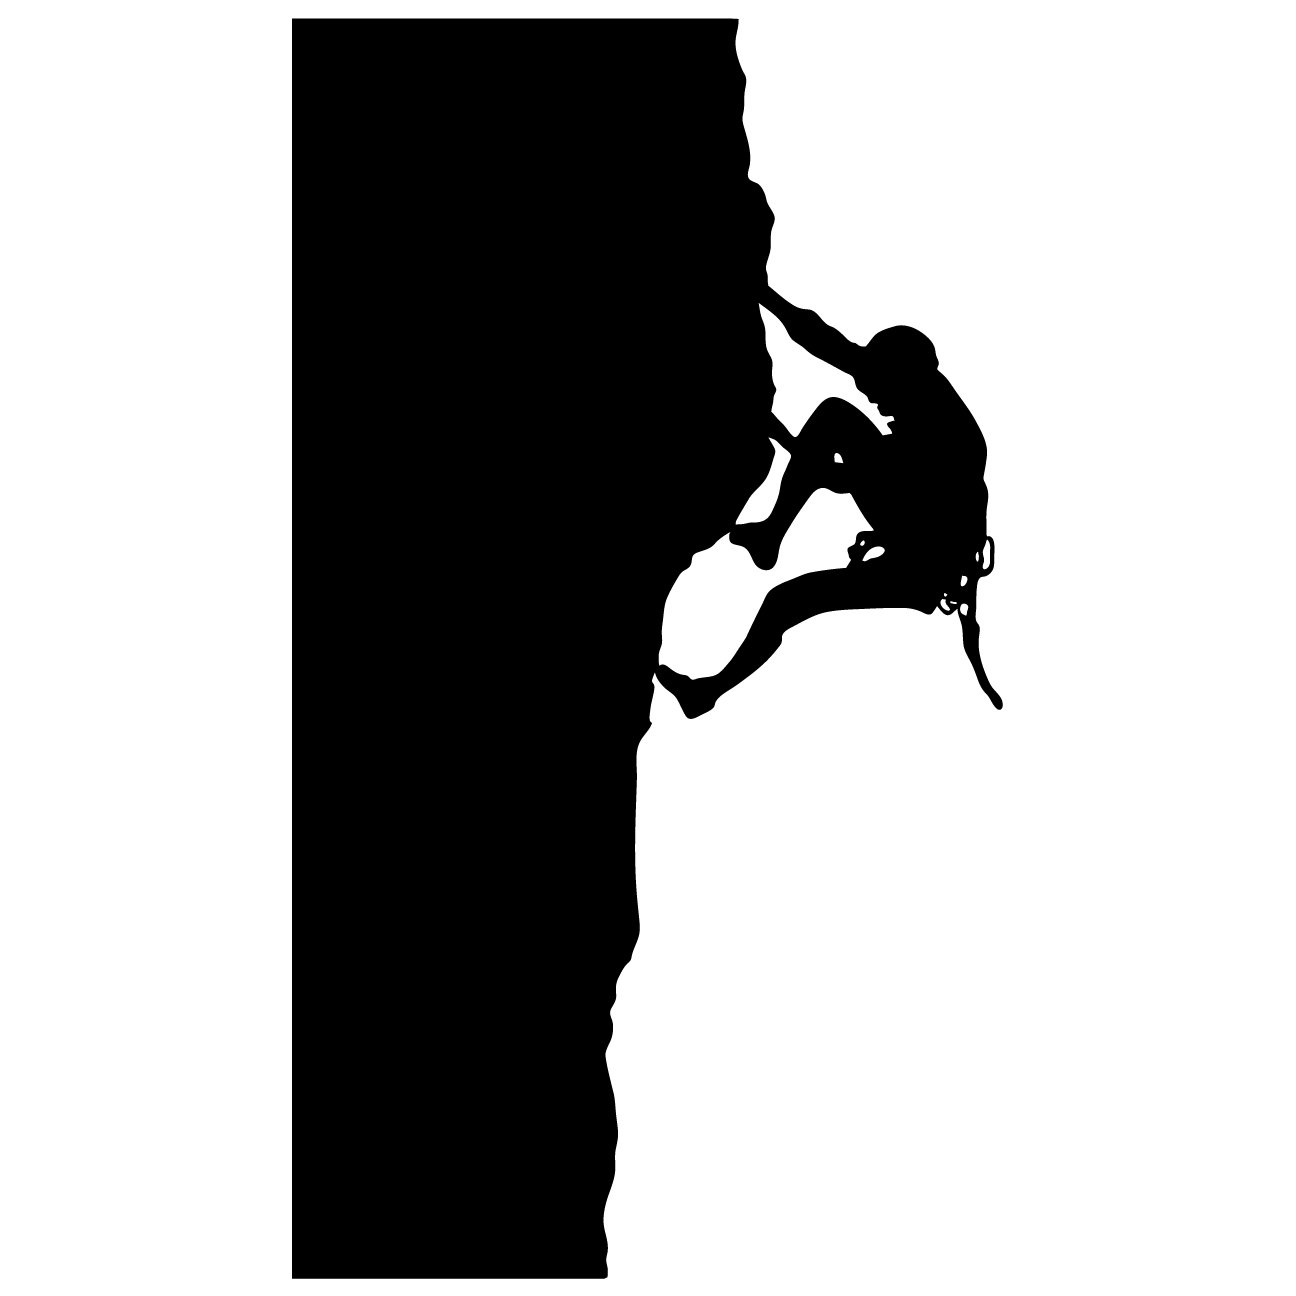 Benny Bartlett Wallpapers Climber Silhouette Amazon com Rock Climbing